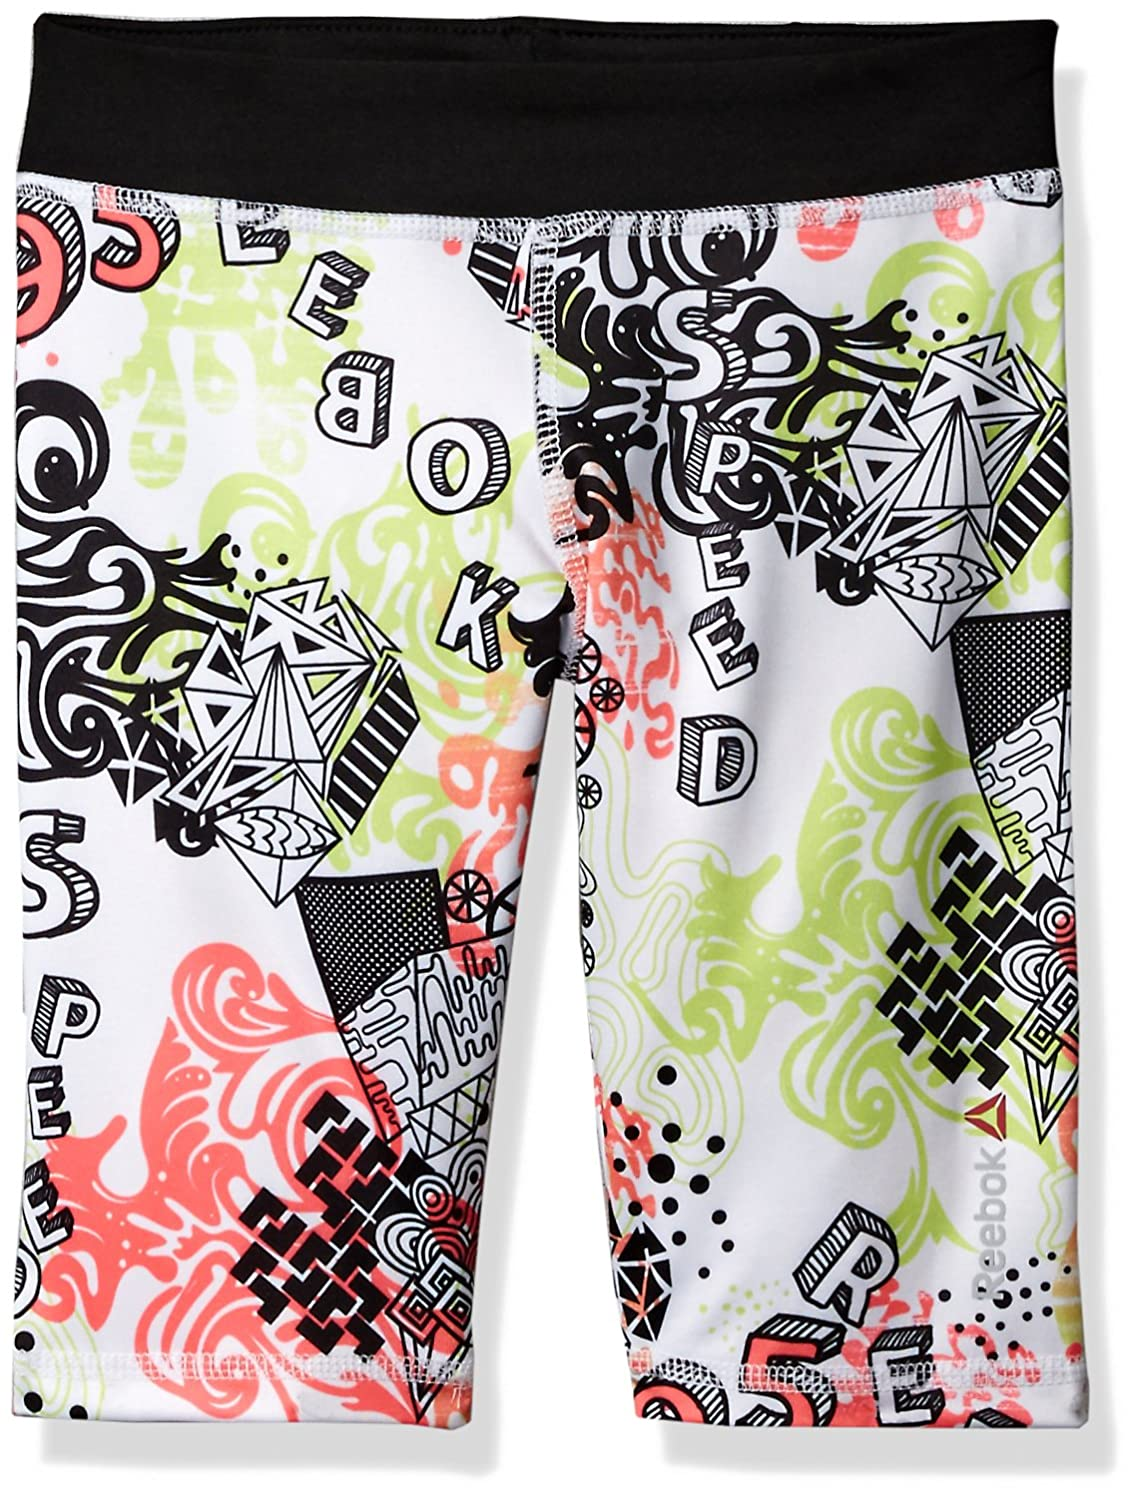 Reebok Girls' AOP Bike Short Reebok Children' s Apparel (from Parigi) QGM7310